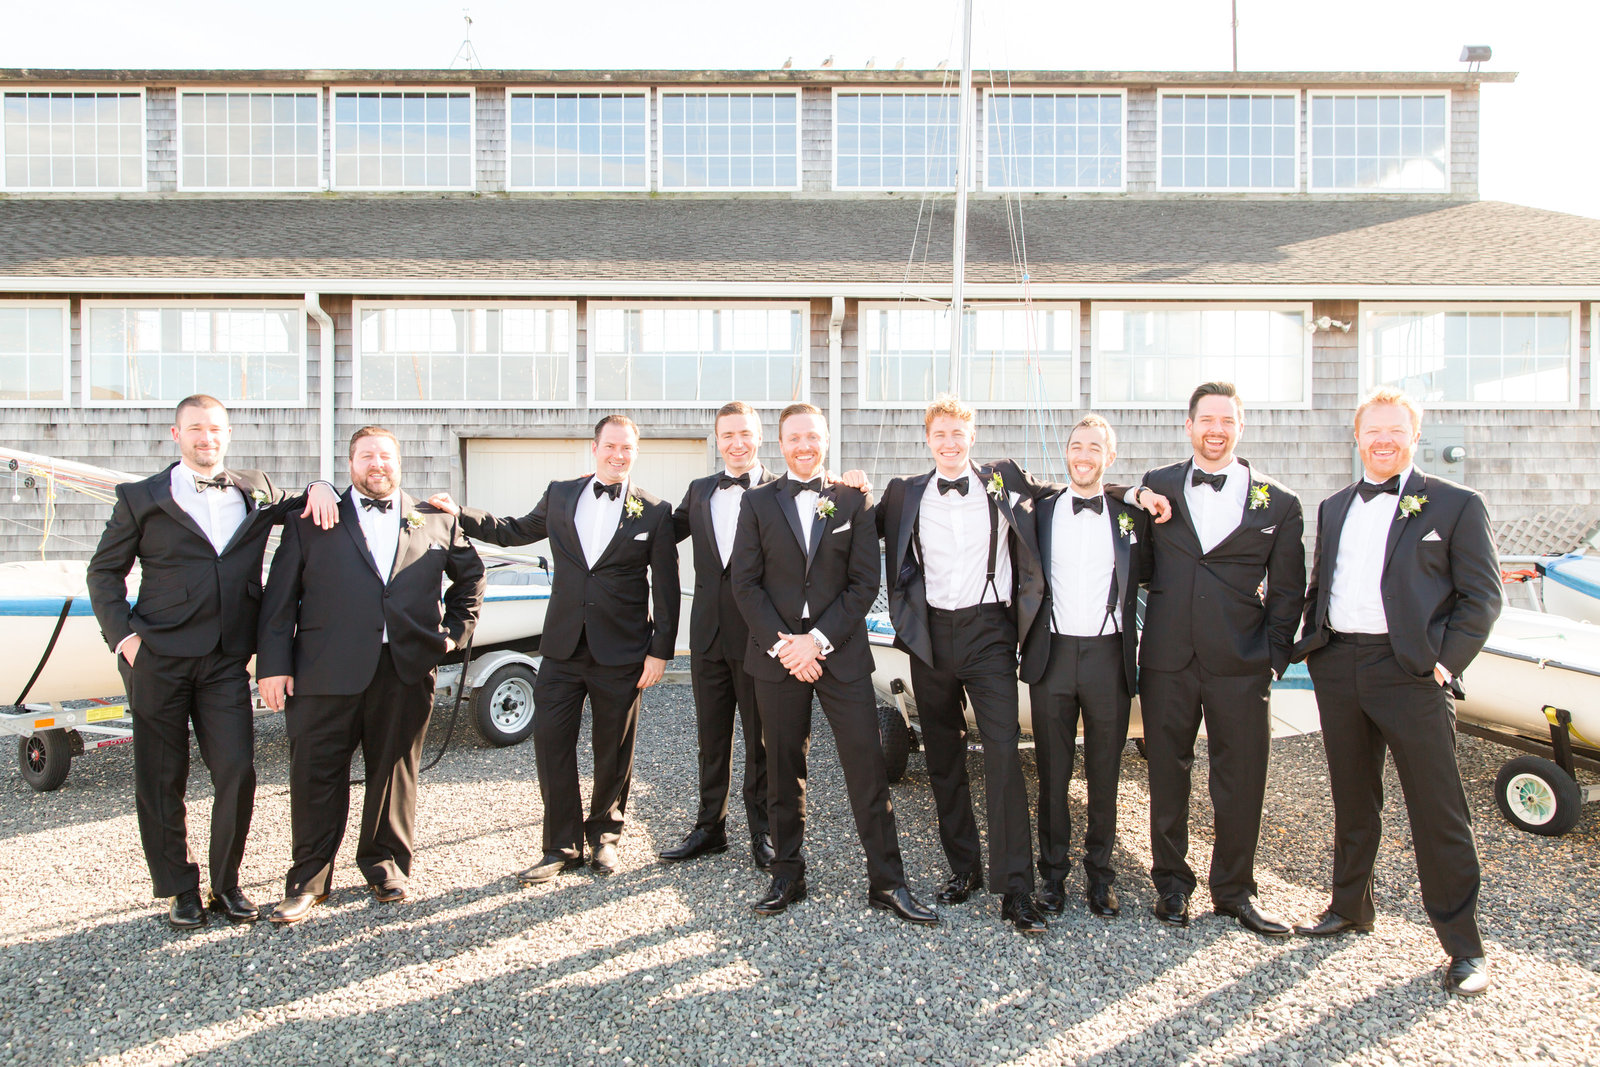 Groomsmen at Bay Head Yacht Club Wedding